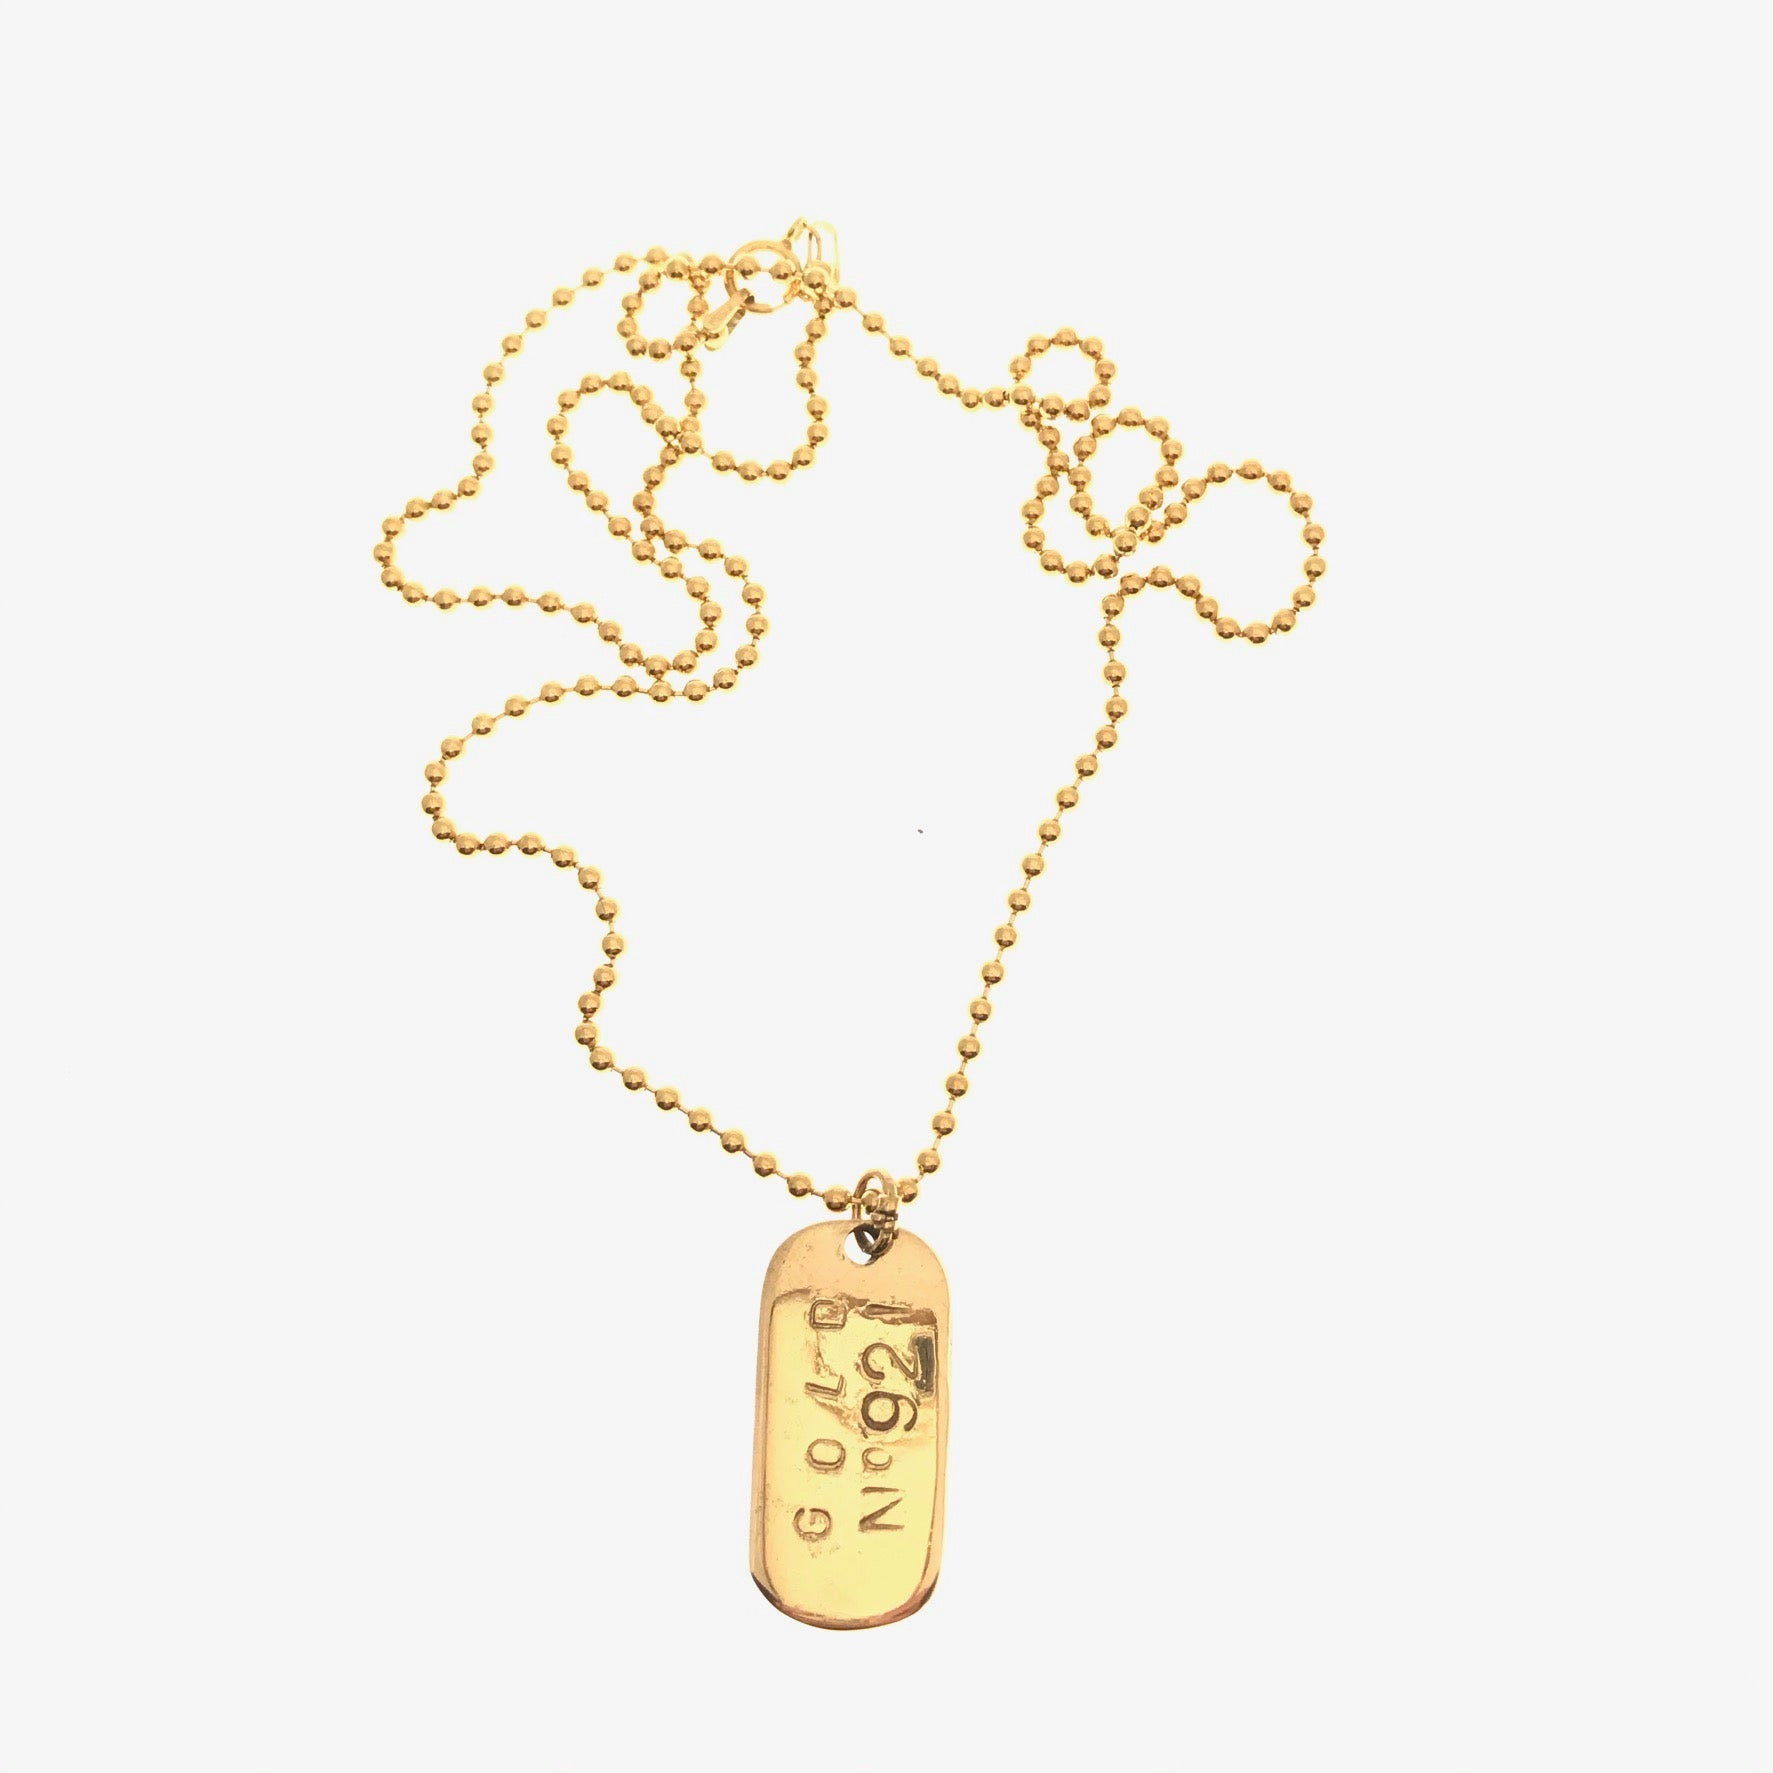 gold Chanel tag